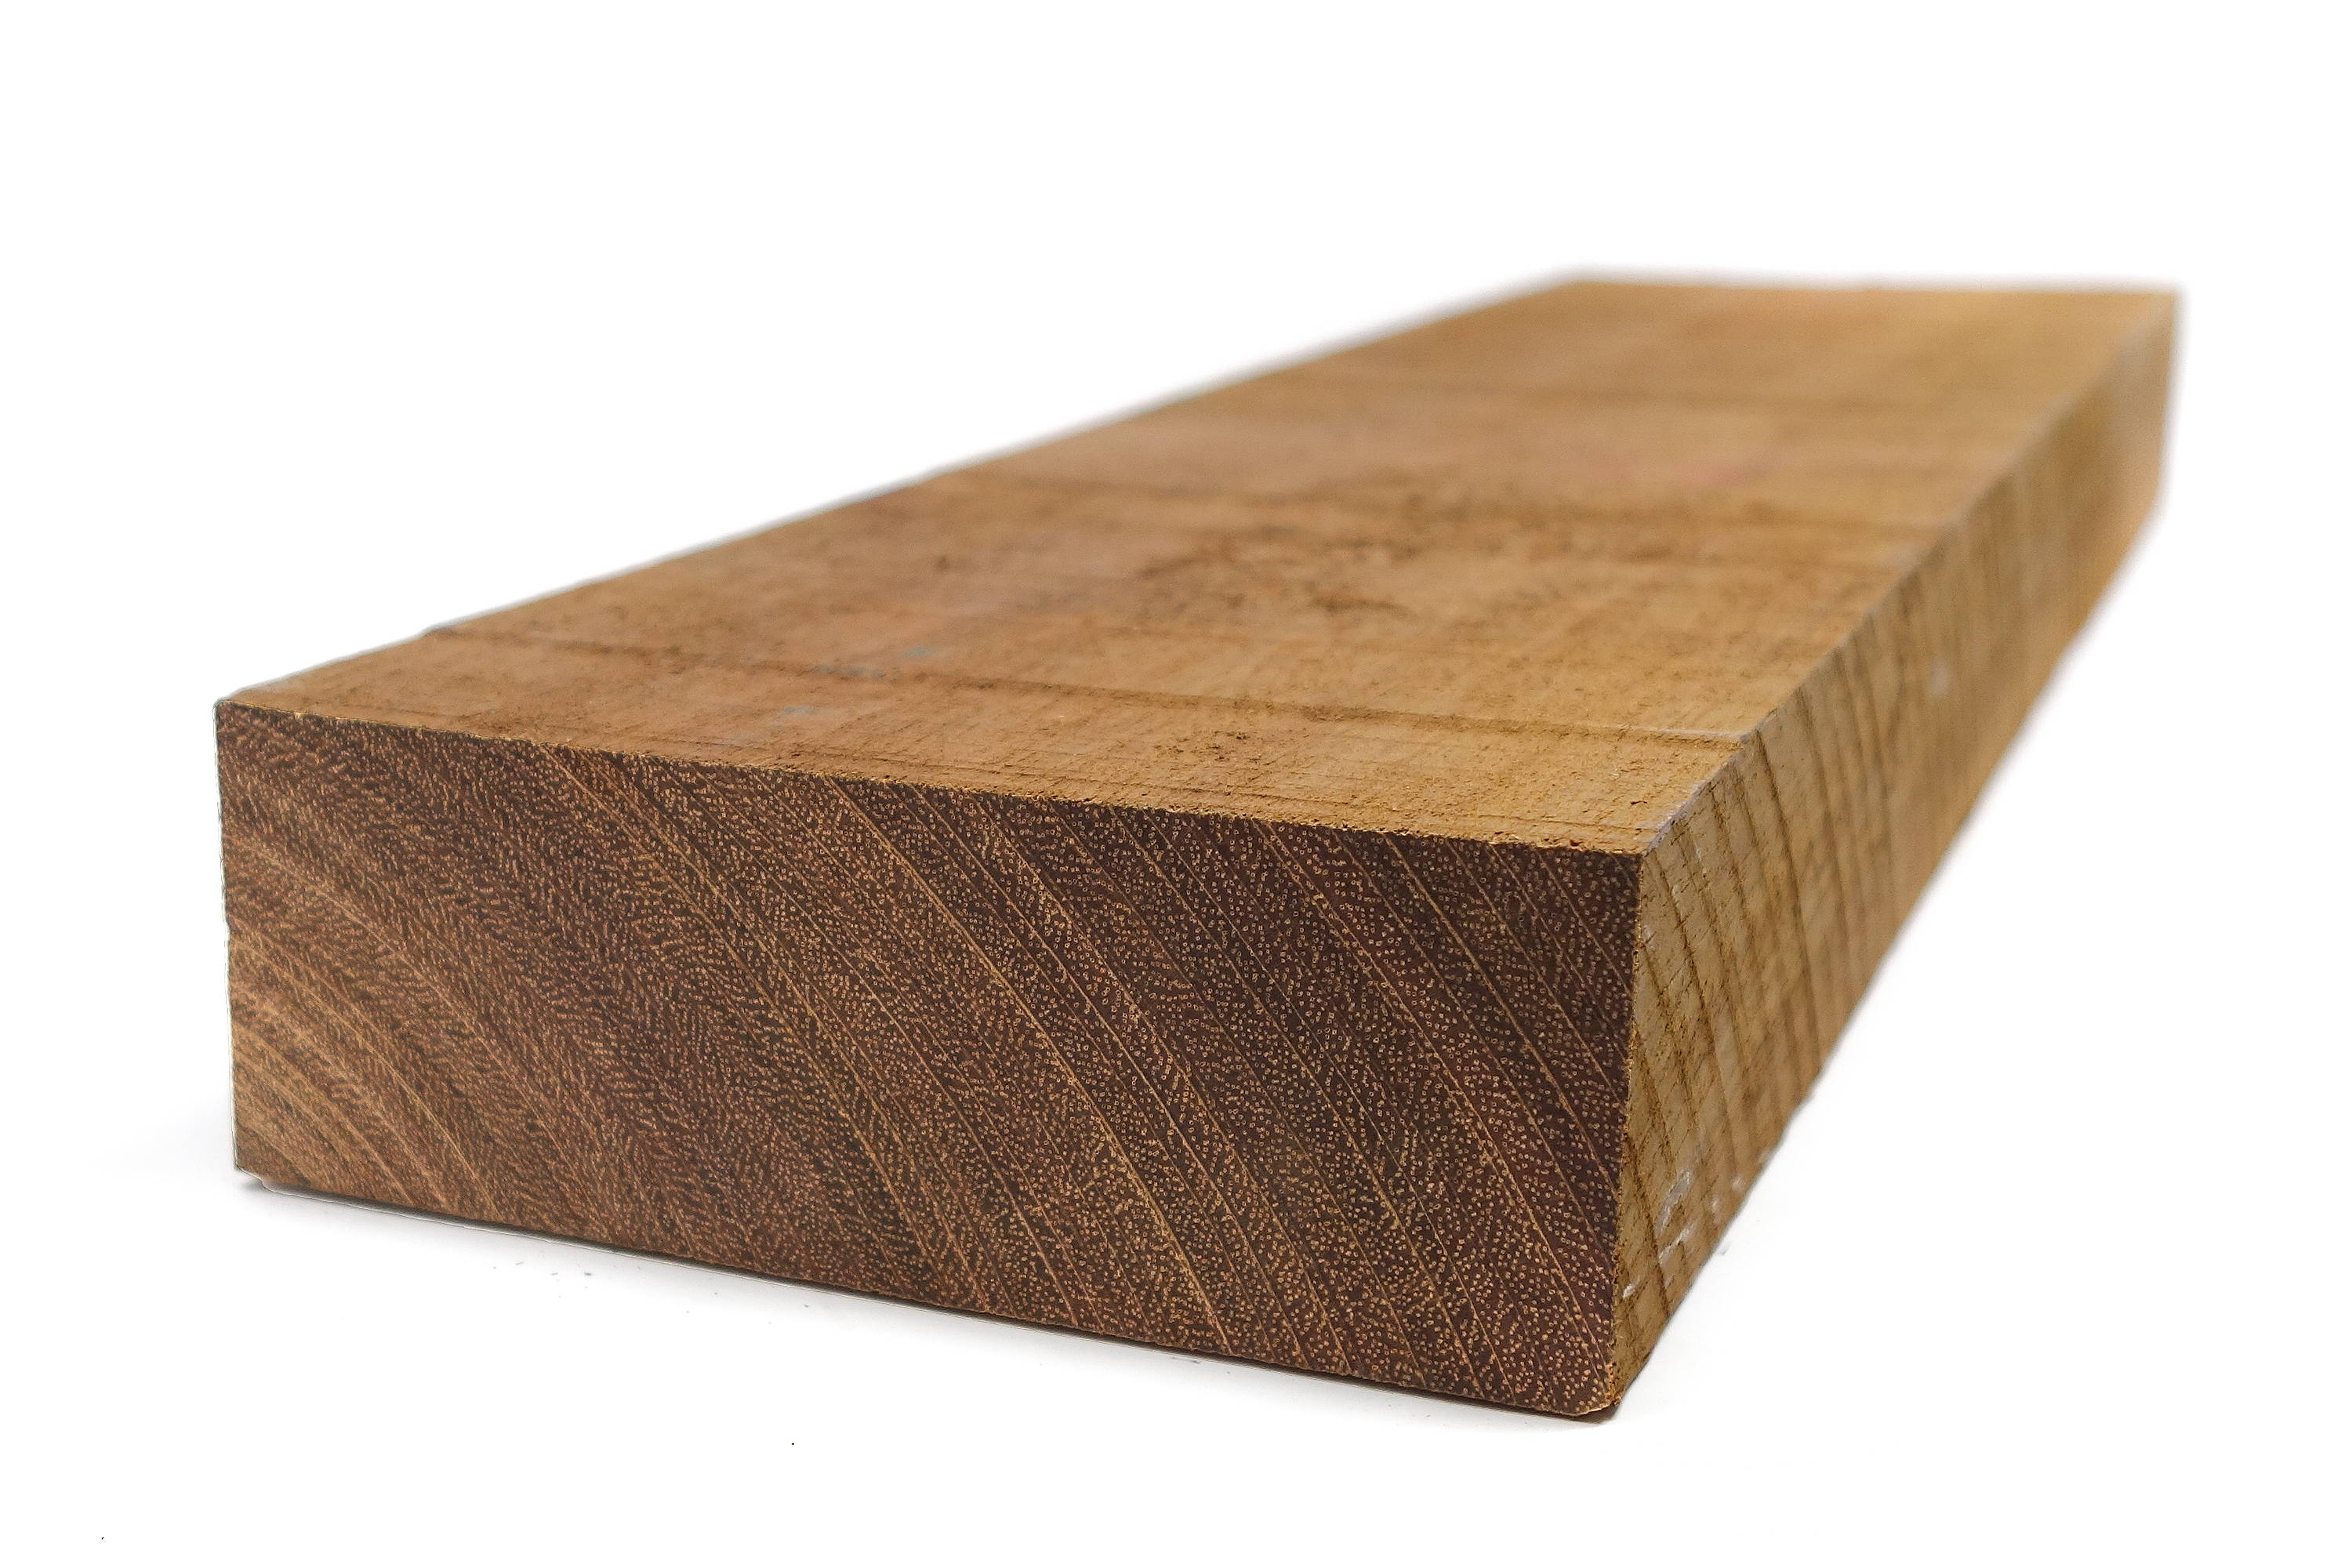 jatoba 8/4 board cut